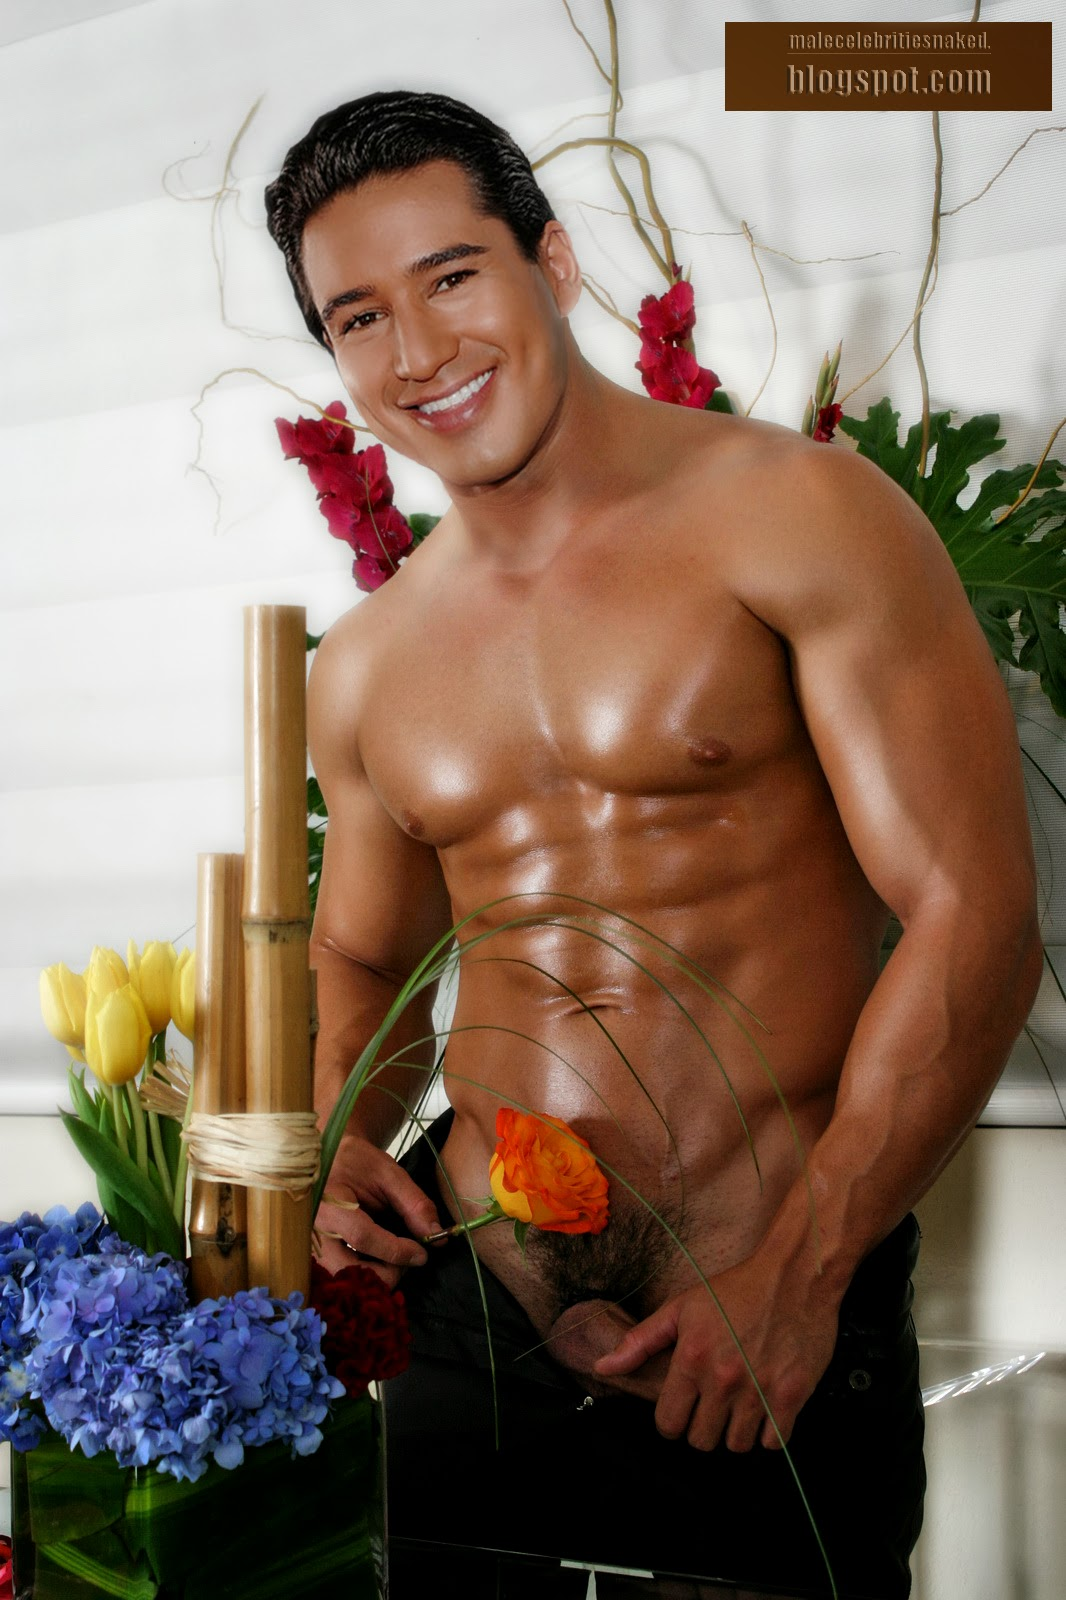 Malecelebritiesnaked: All grown up: Mario Lopez naked III